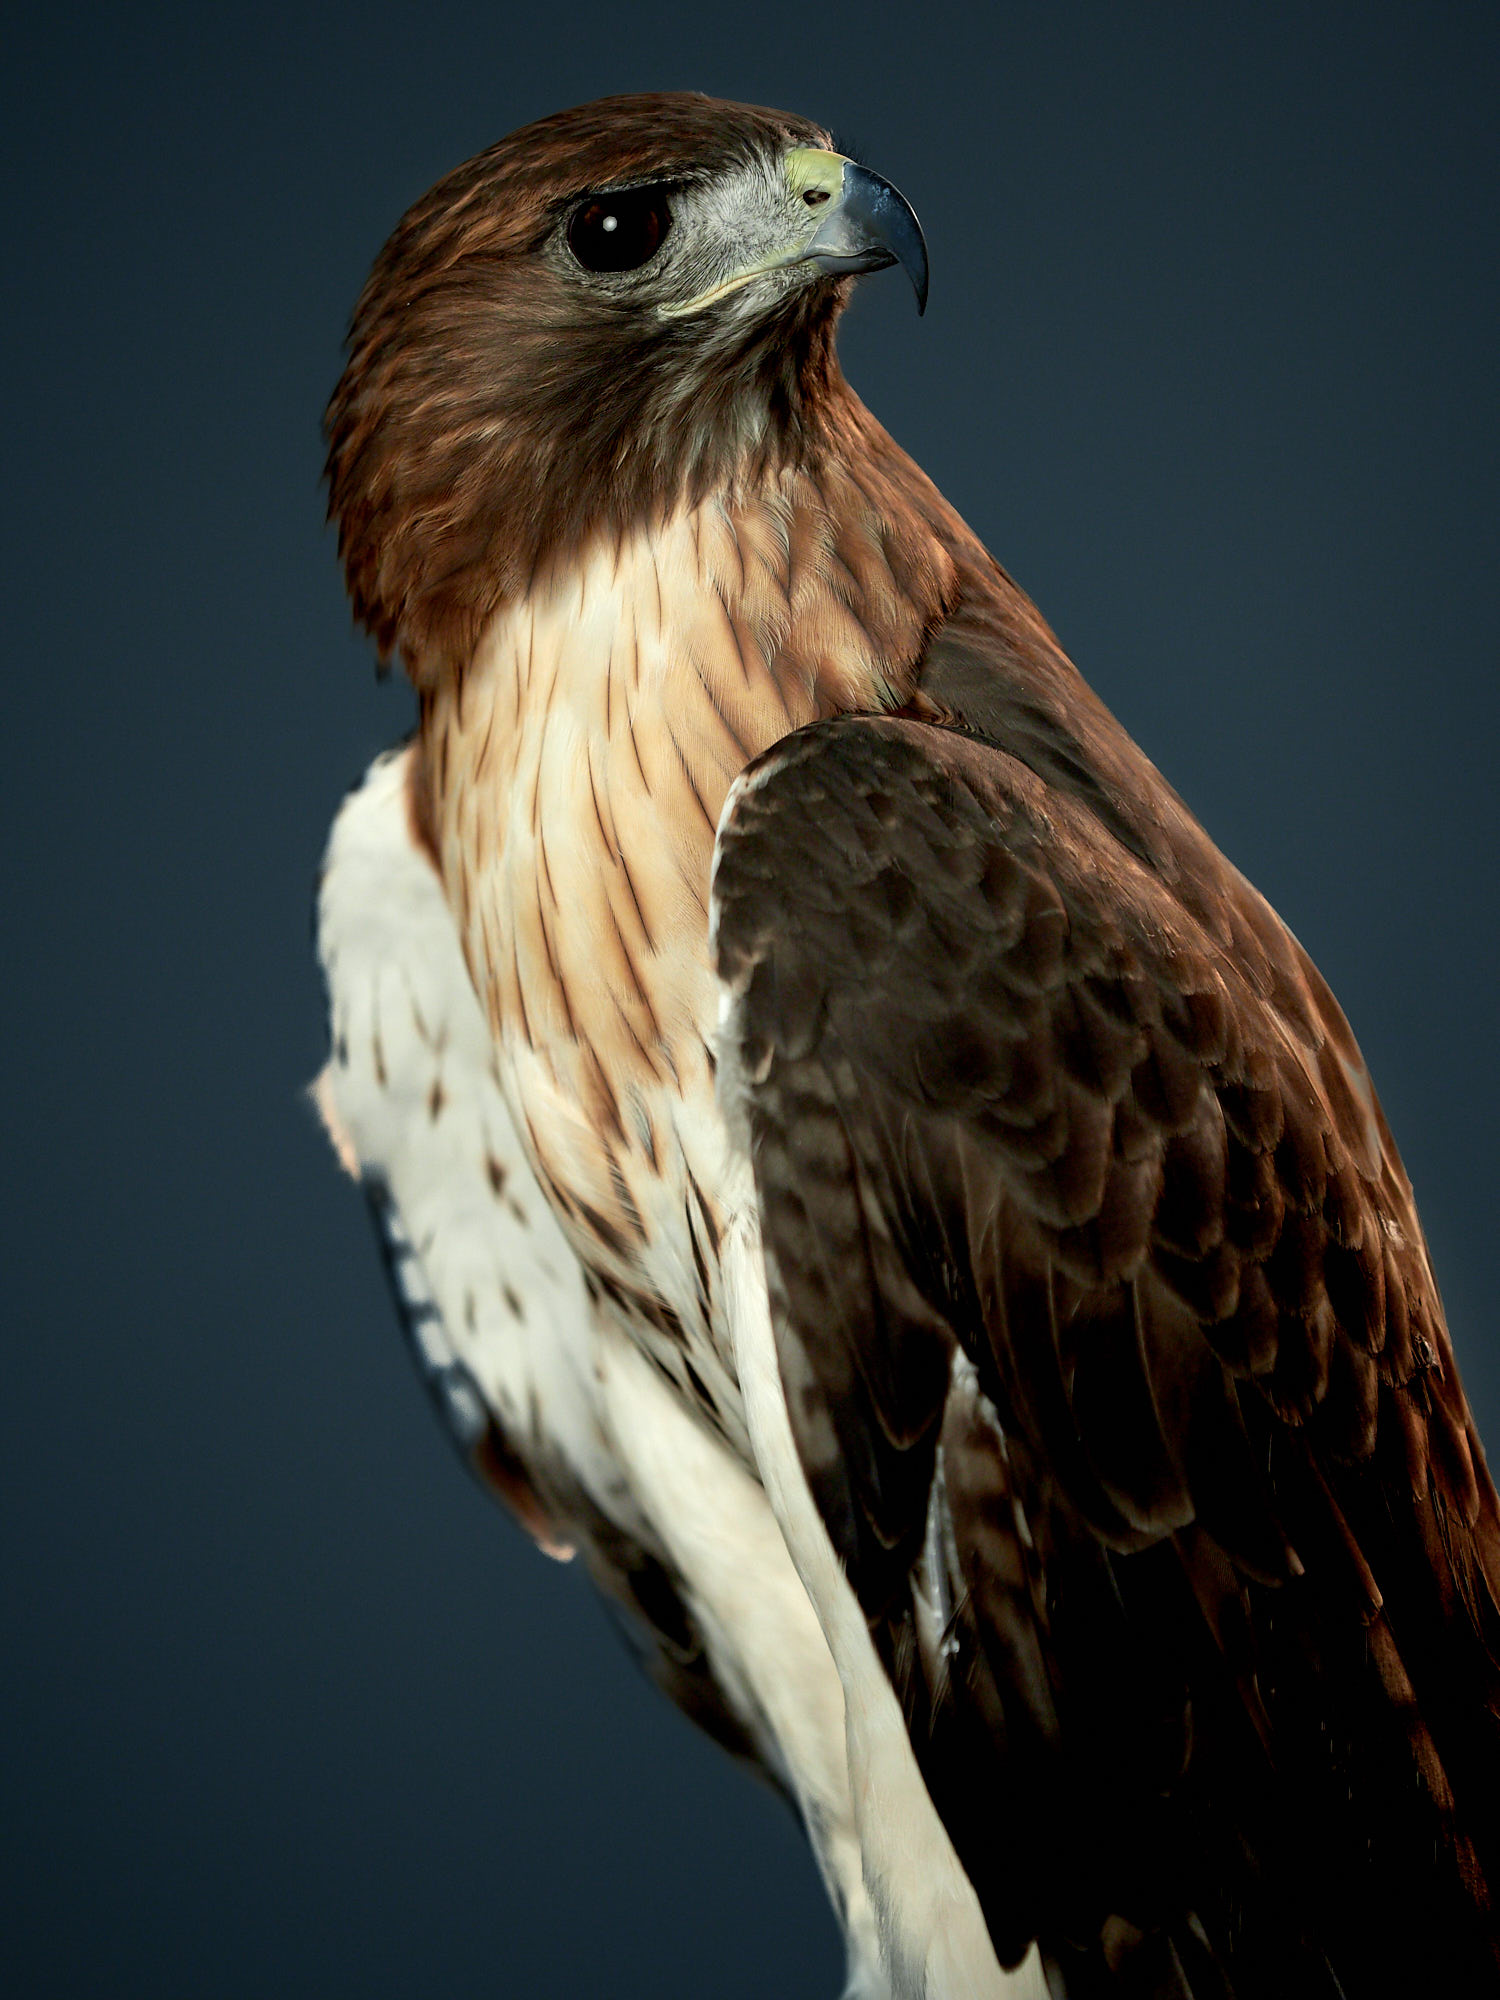 Red Tail Hawk from Blackland Prairie Raptor Center - Olympus Camera Raptor Day at Precision Camera in Austin, Tx.